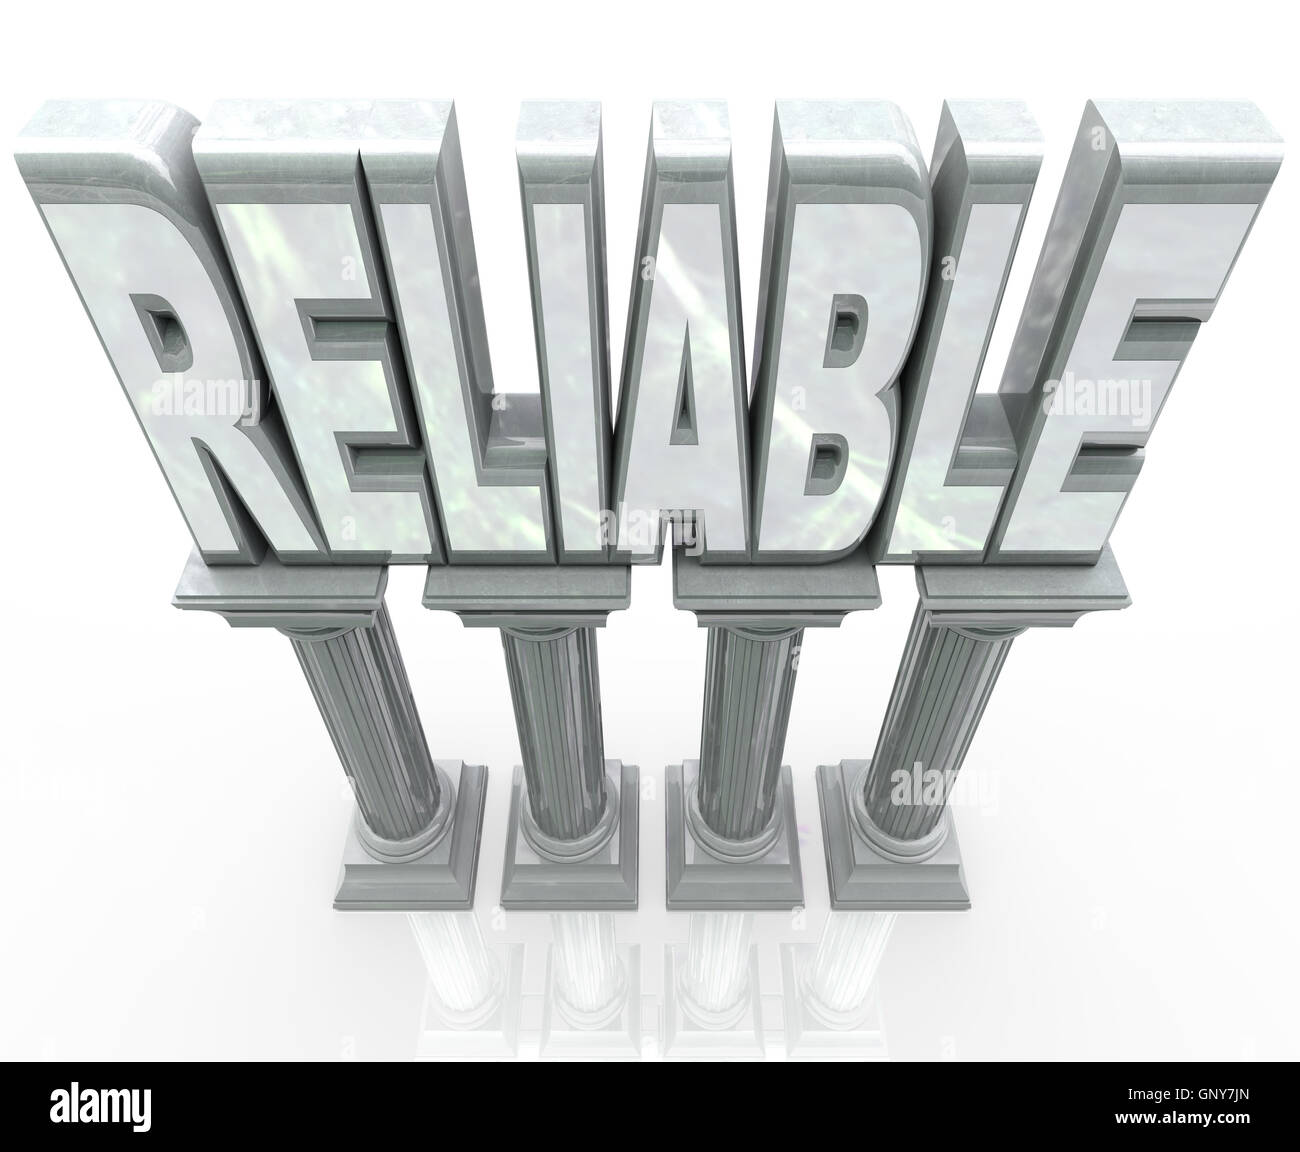 Reliable Word on Columns Dependable Durability - Stock Image